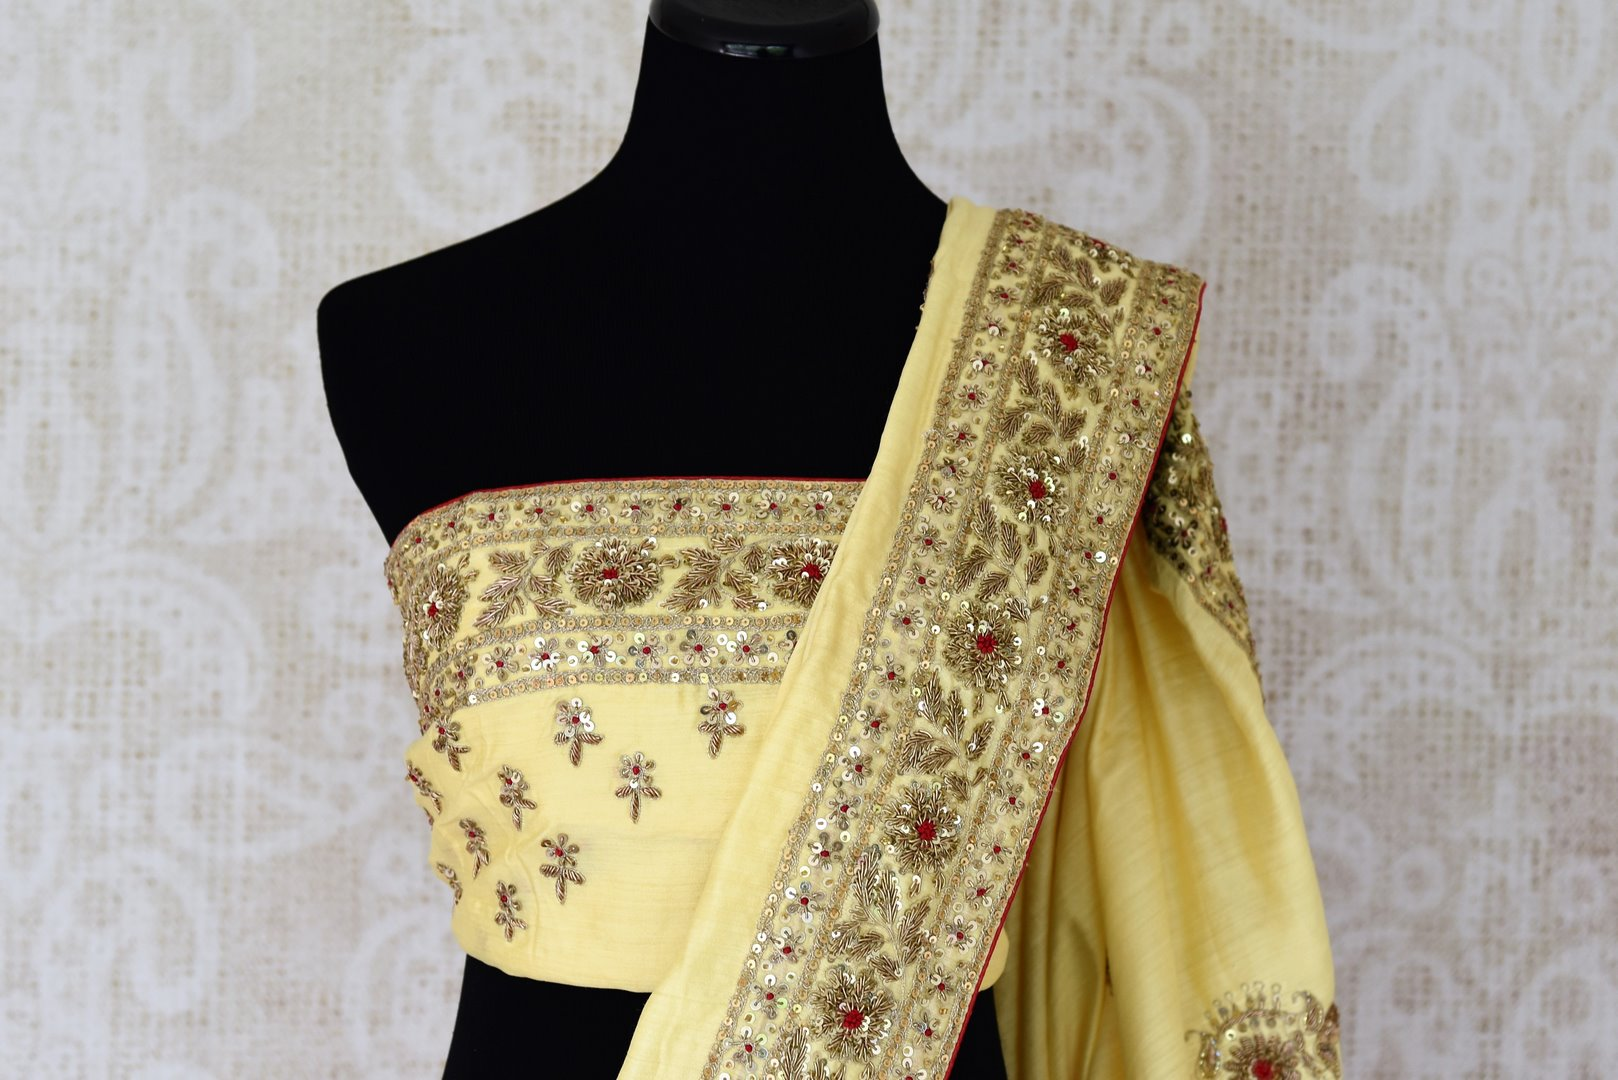 Buy cream color muga silk saree with hand embroidery online in USA. Shop exclusive Indian designer saris, handloom sarees, Banarasi saris, wedding sarees in USA at Pure Elegance clothing store. Explore a range of traditional Indian women clothing also available at our online store. Shop now.-blouse pallu